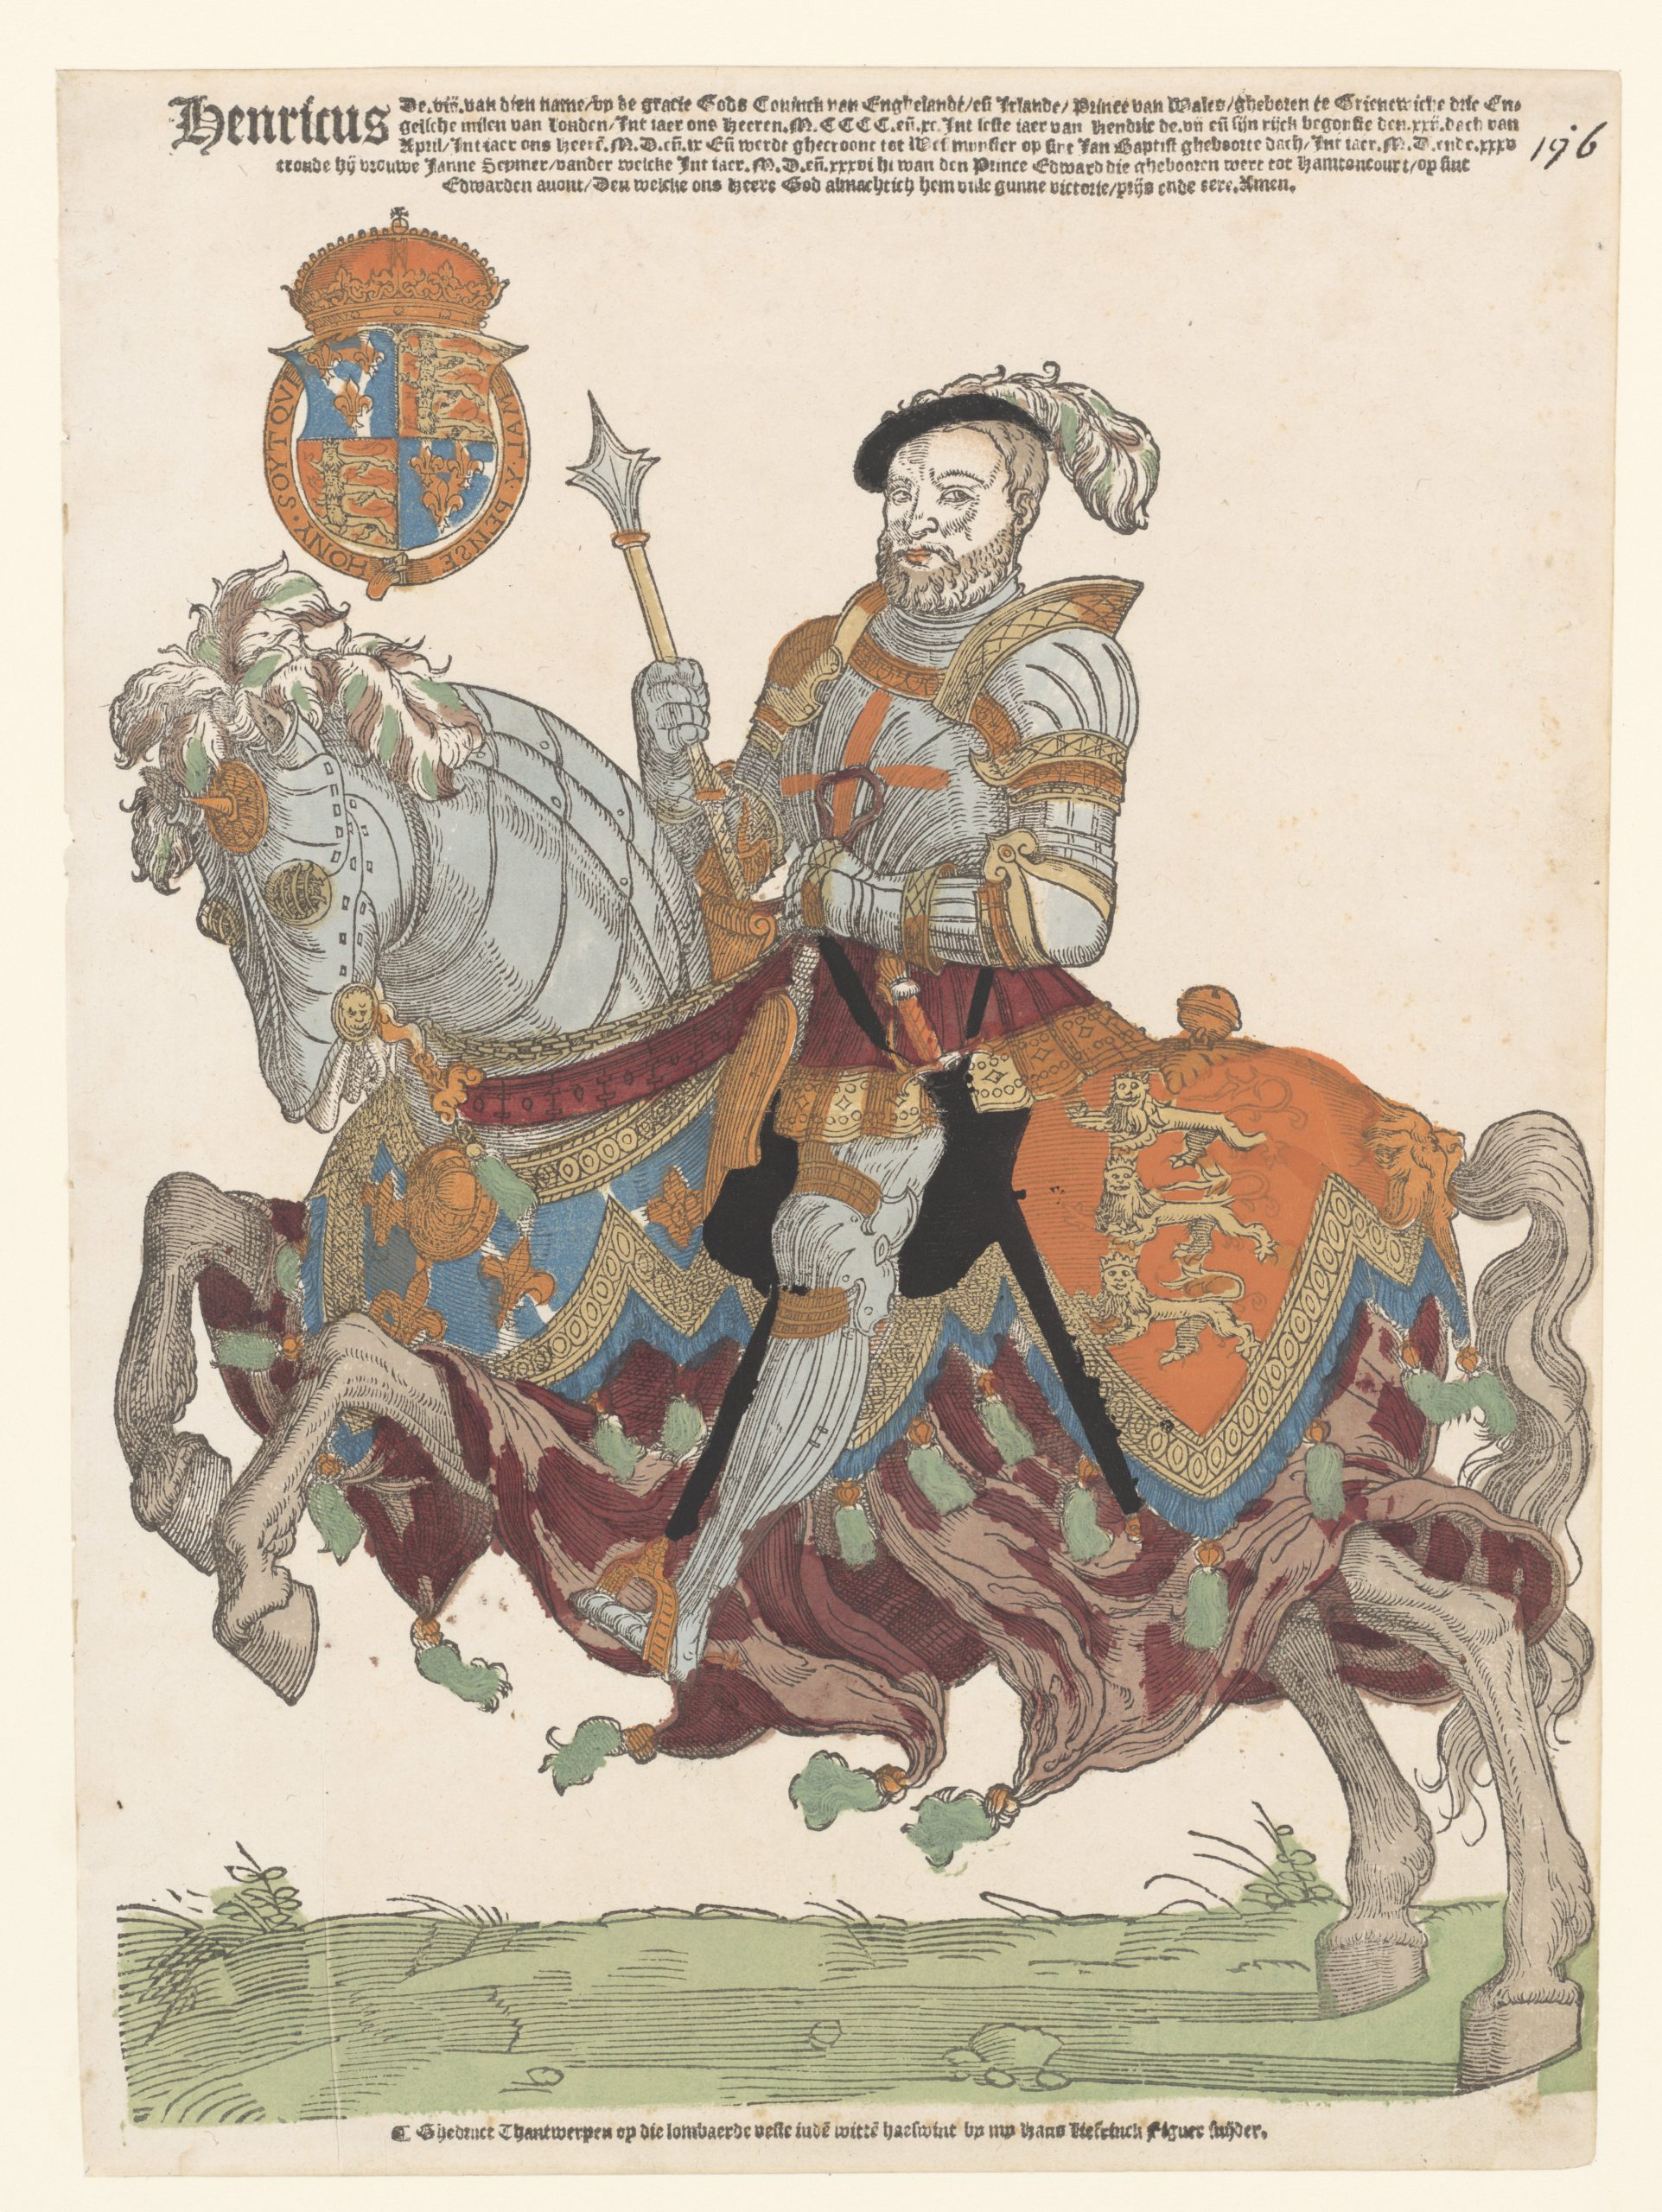 Henry VIII, king of England, on Horseback, 1538-48, Cornelis Anthonisz (manner of) and Hans Liefrinck (I), Antwerp, Netherlands